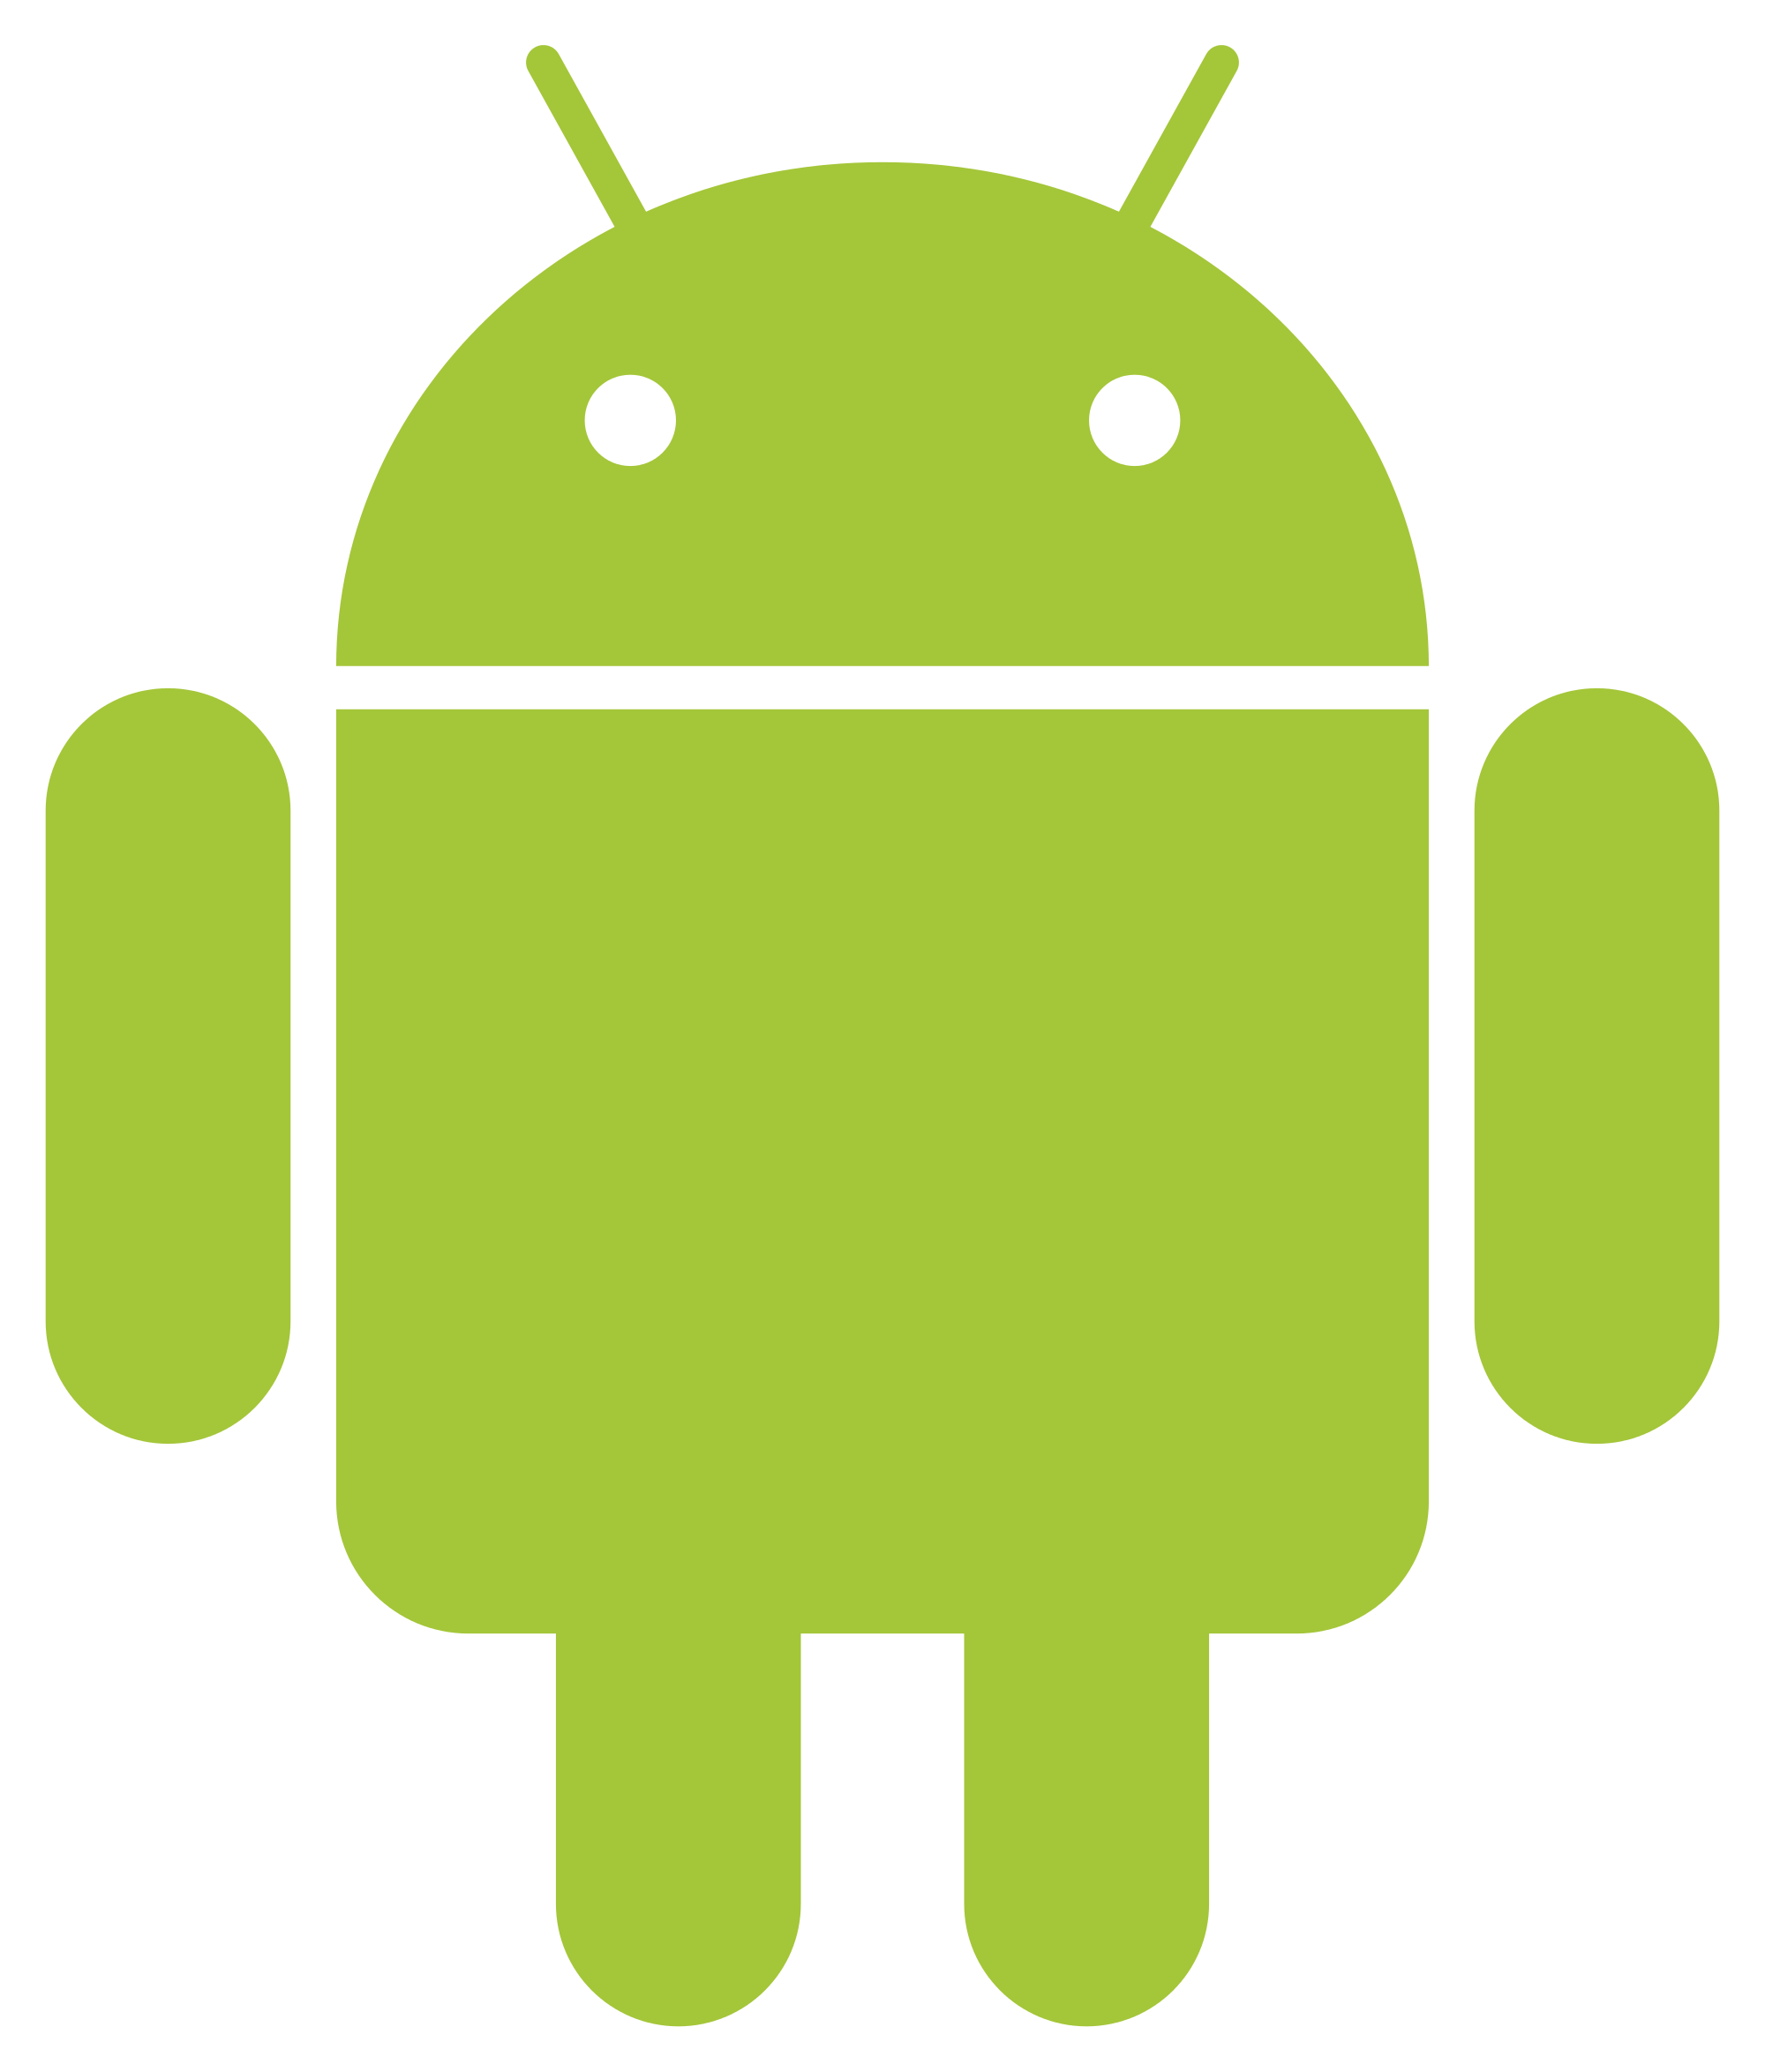 picture download Android png images free. Yes clipart no logo